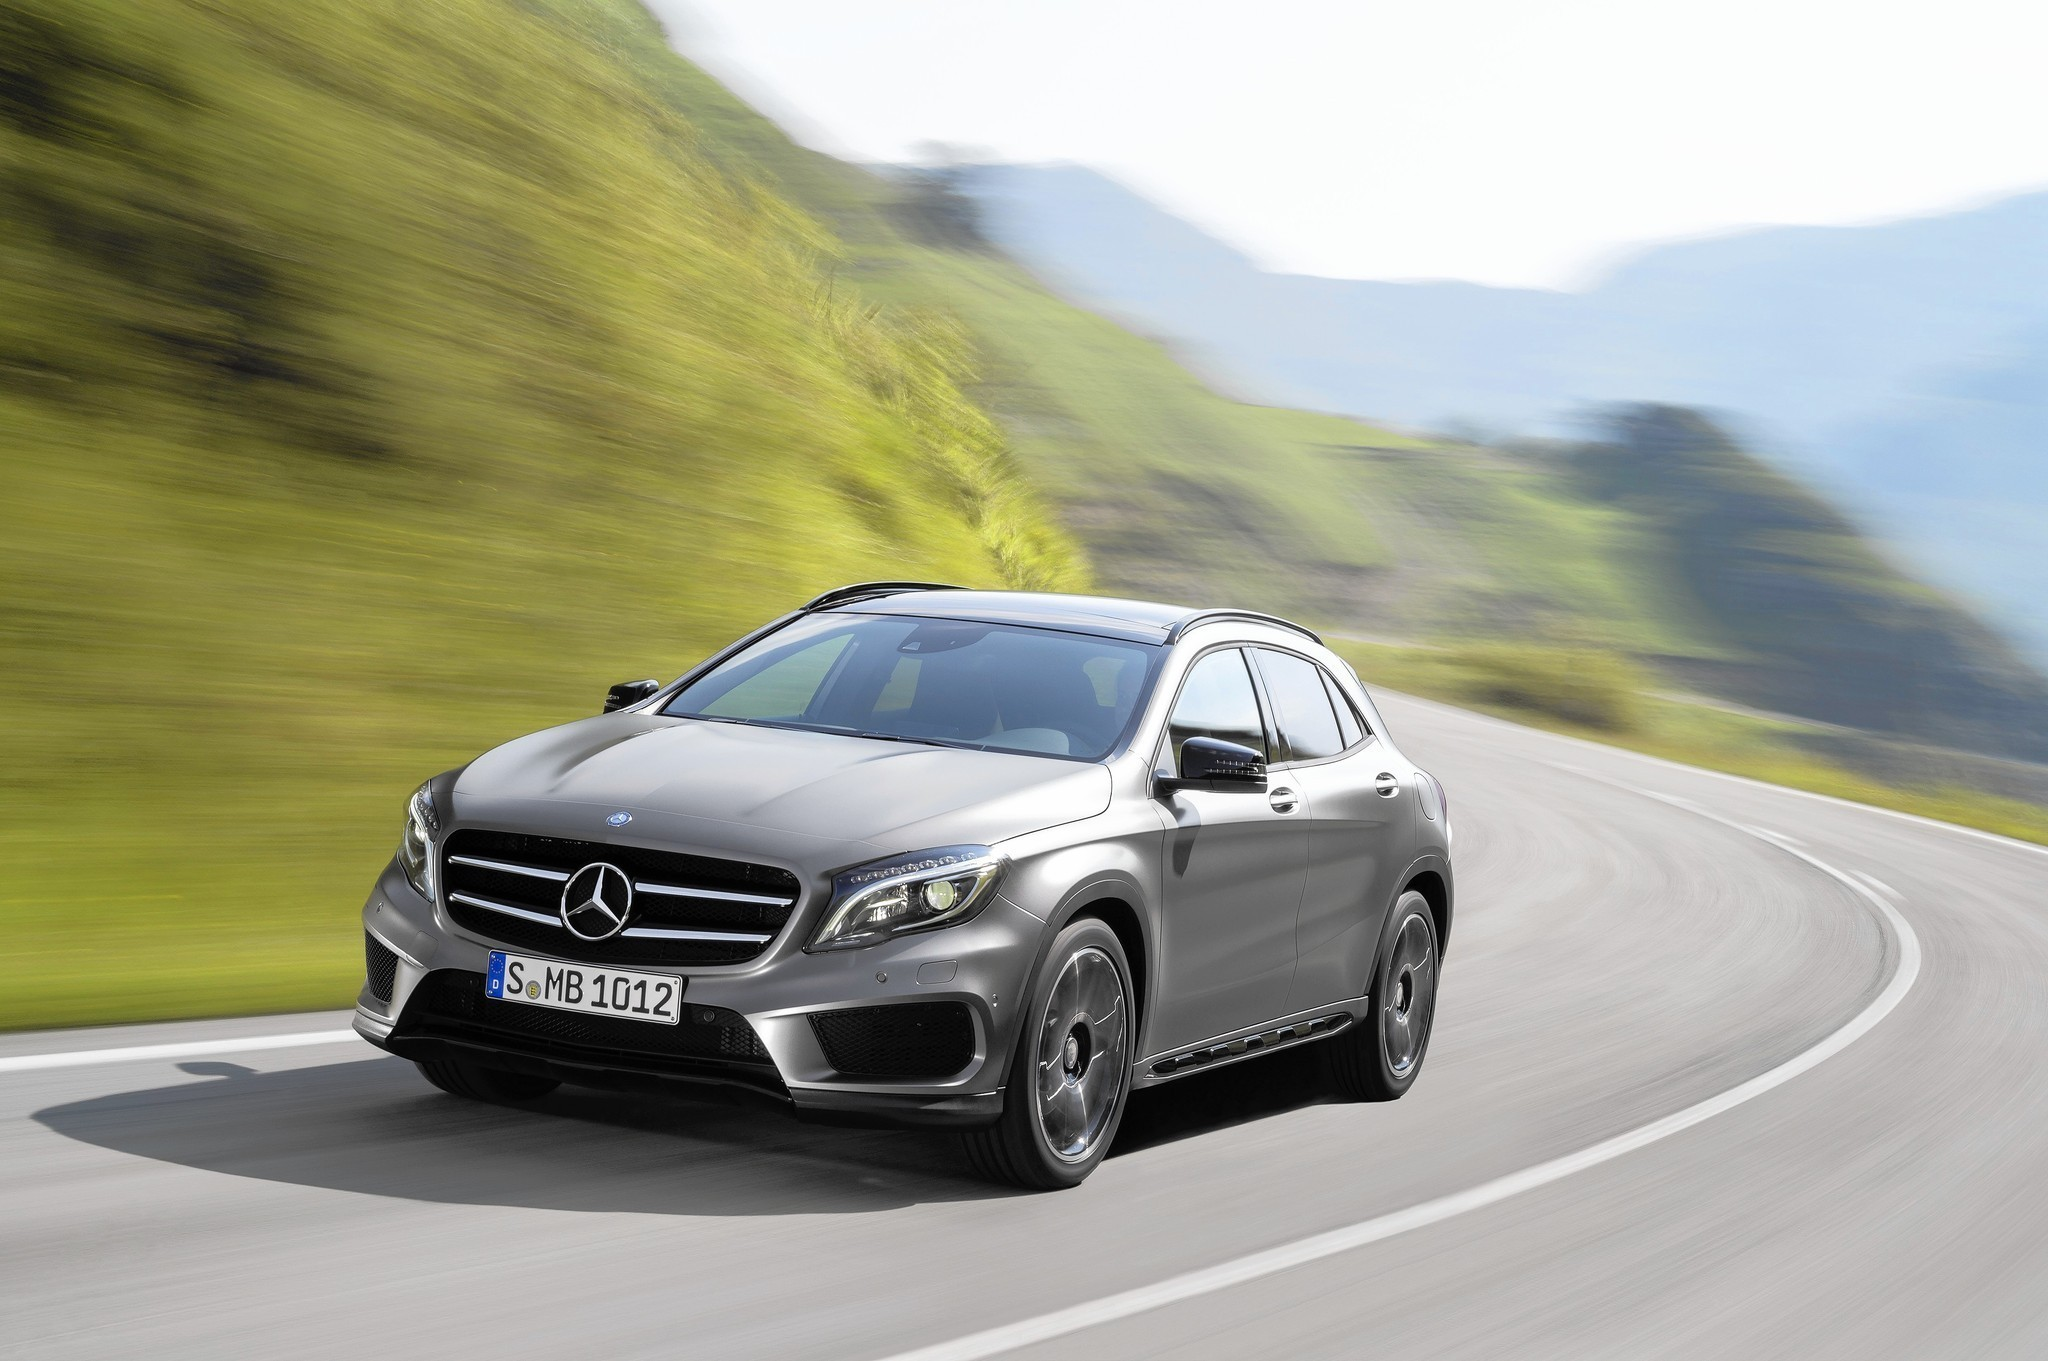 Review mercedes targets new buyers with cute but disappointing gla250 suv la times